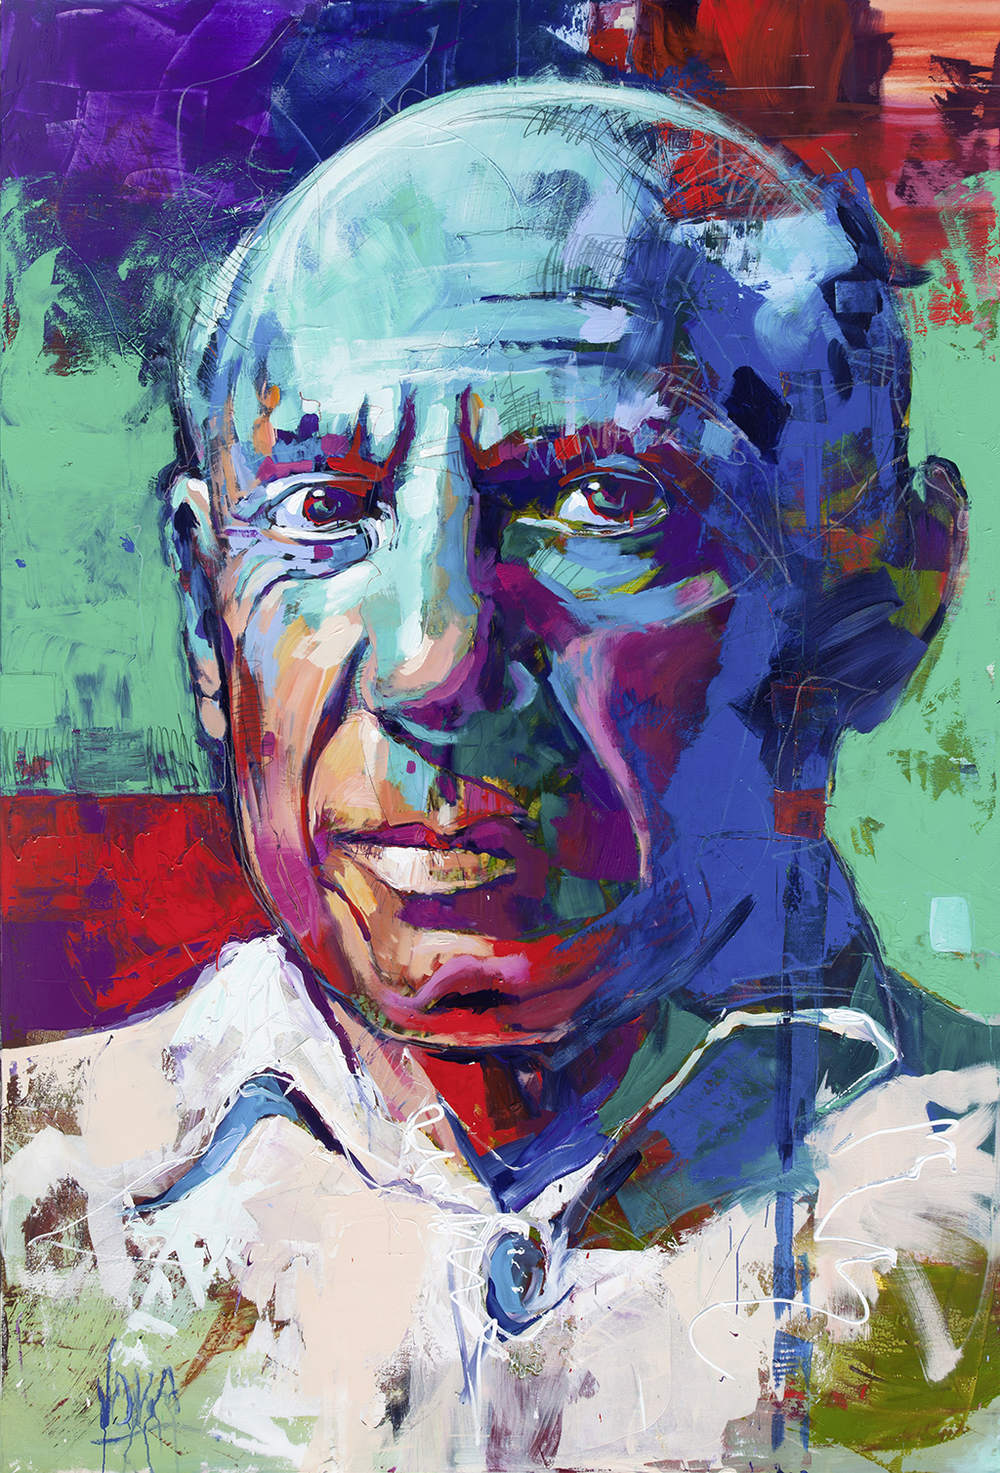 Picasso, 280x190 cm/110,24x74,8 inch, acrylic on canvas